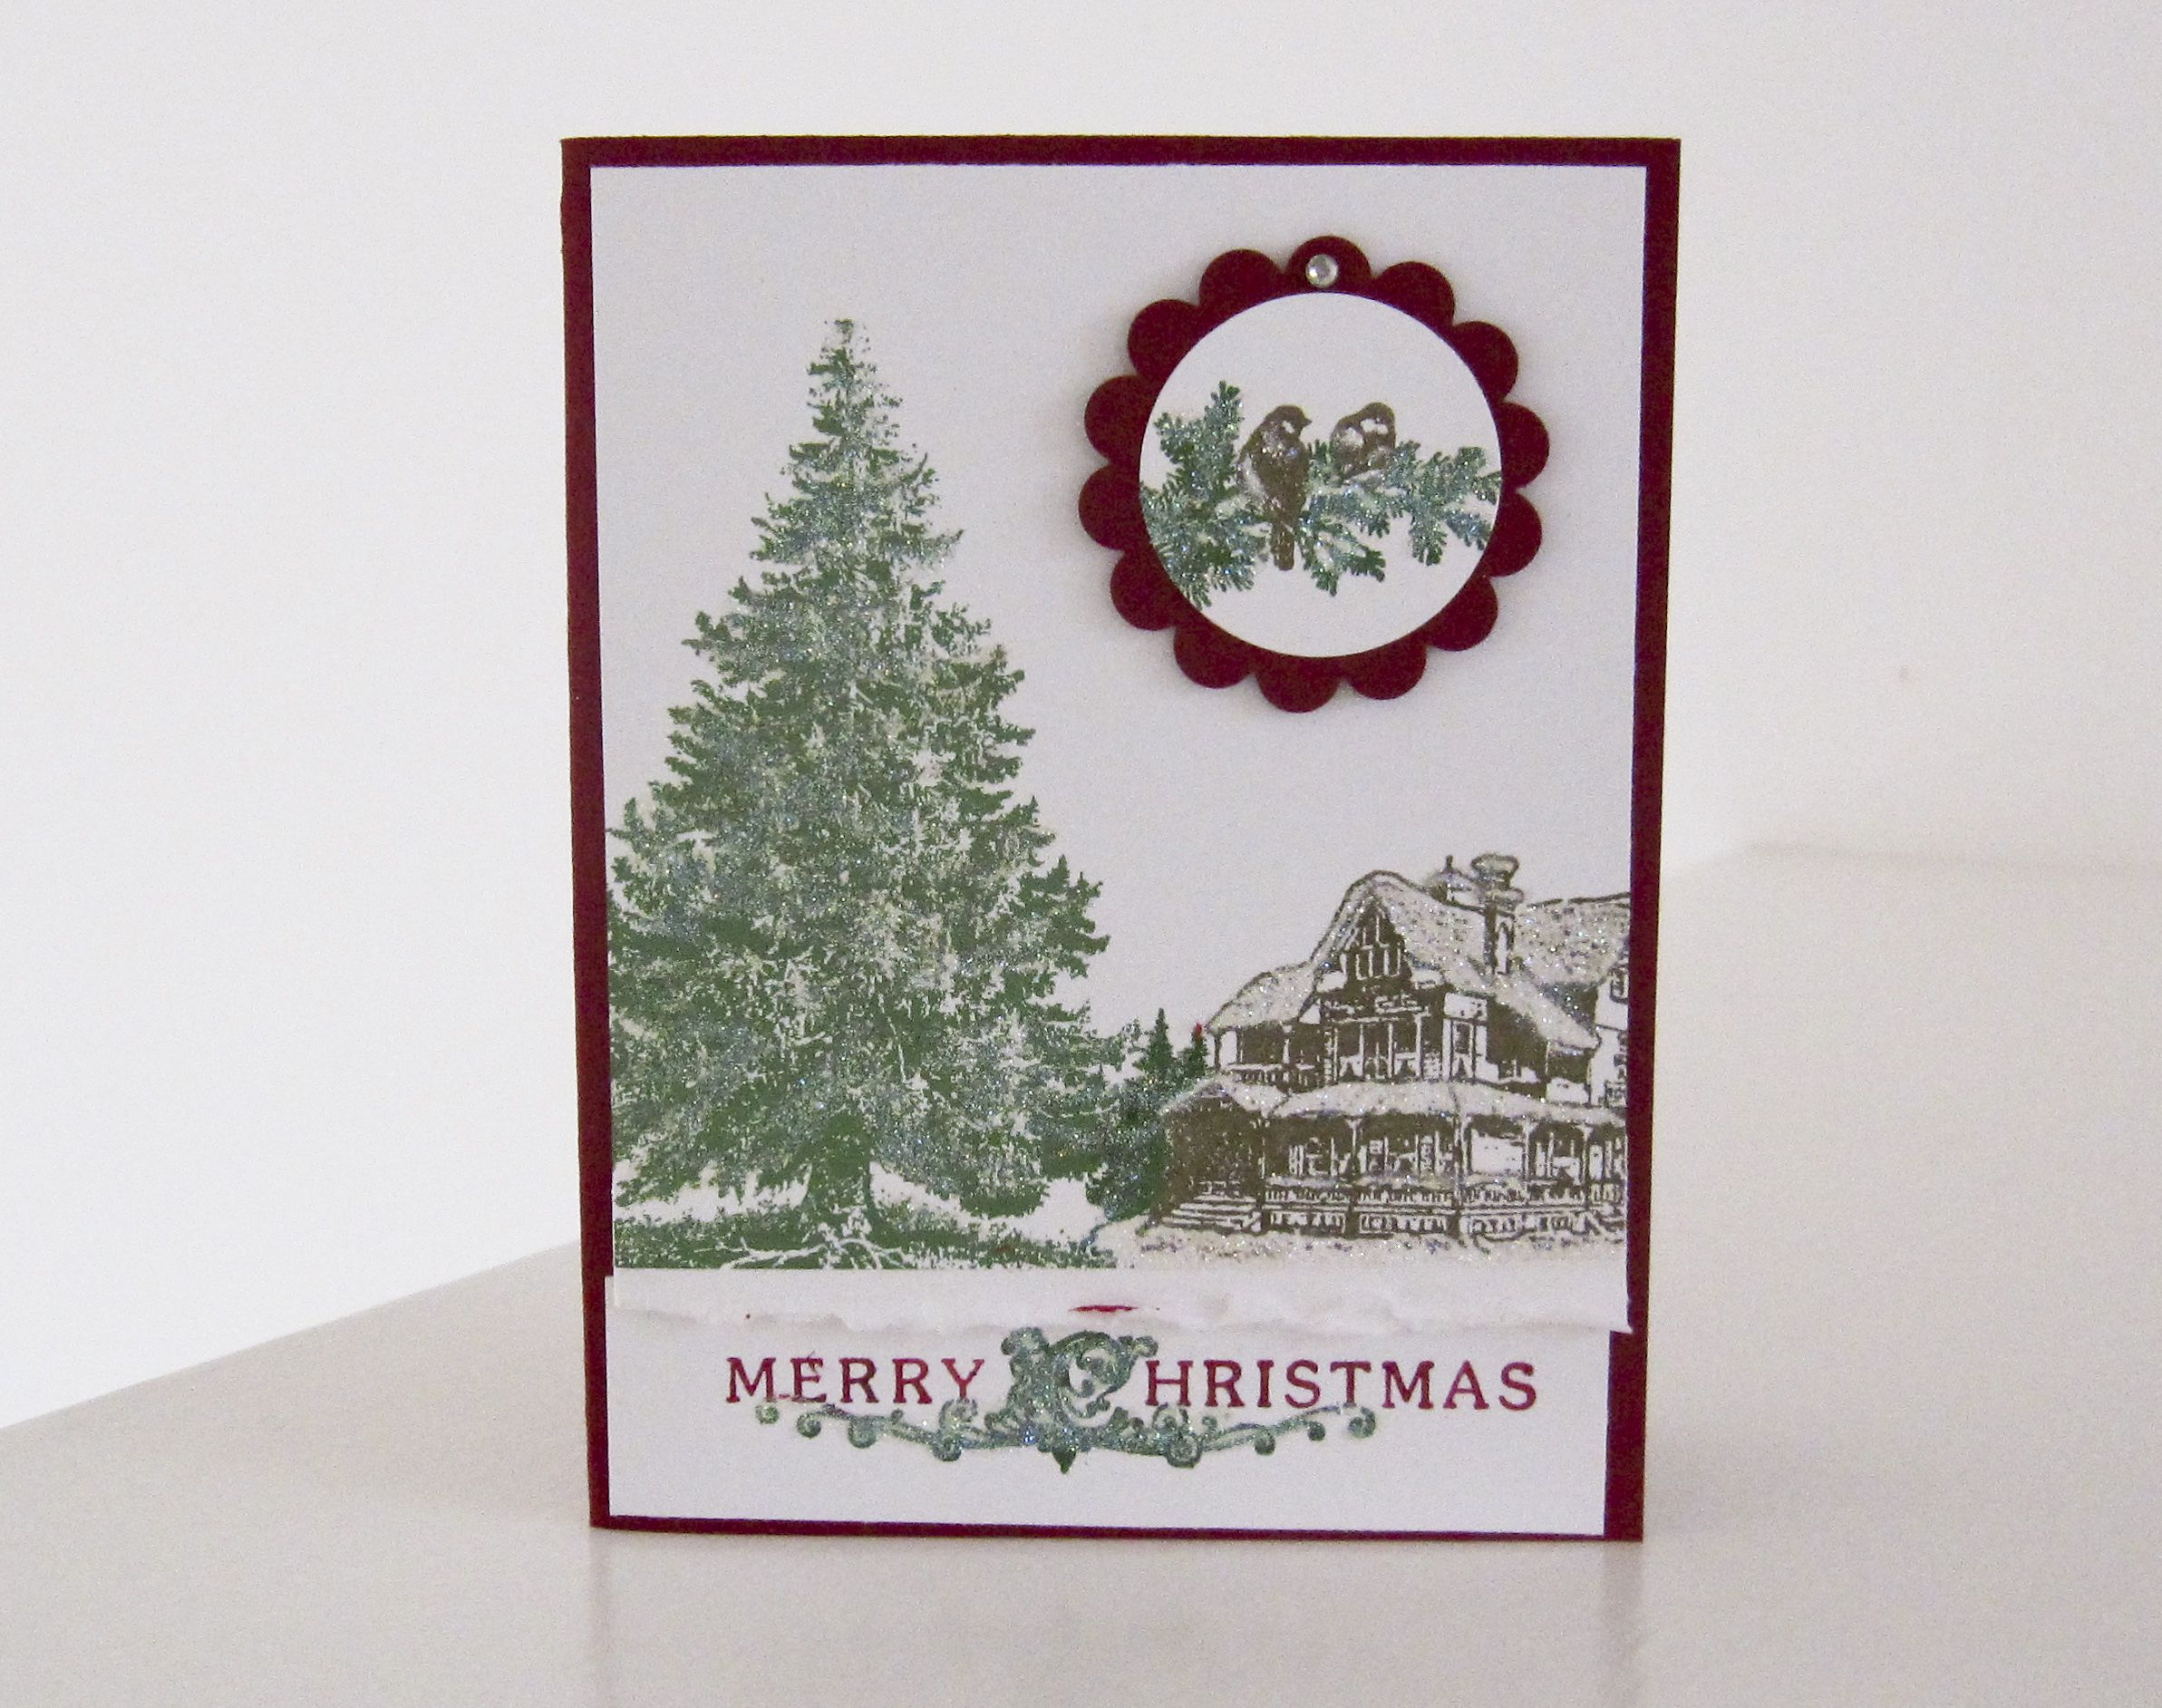 Stampin Up Christmas Lodge photo | Christmas card ideas | Pinterest